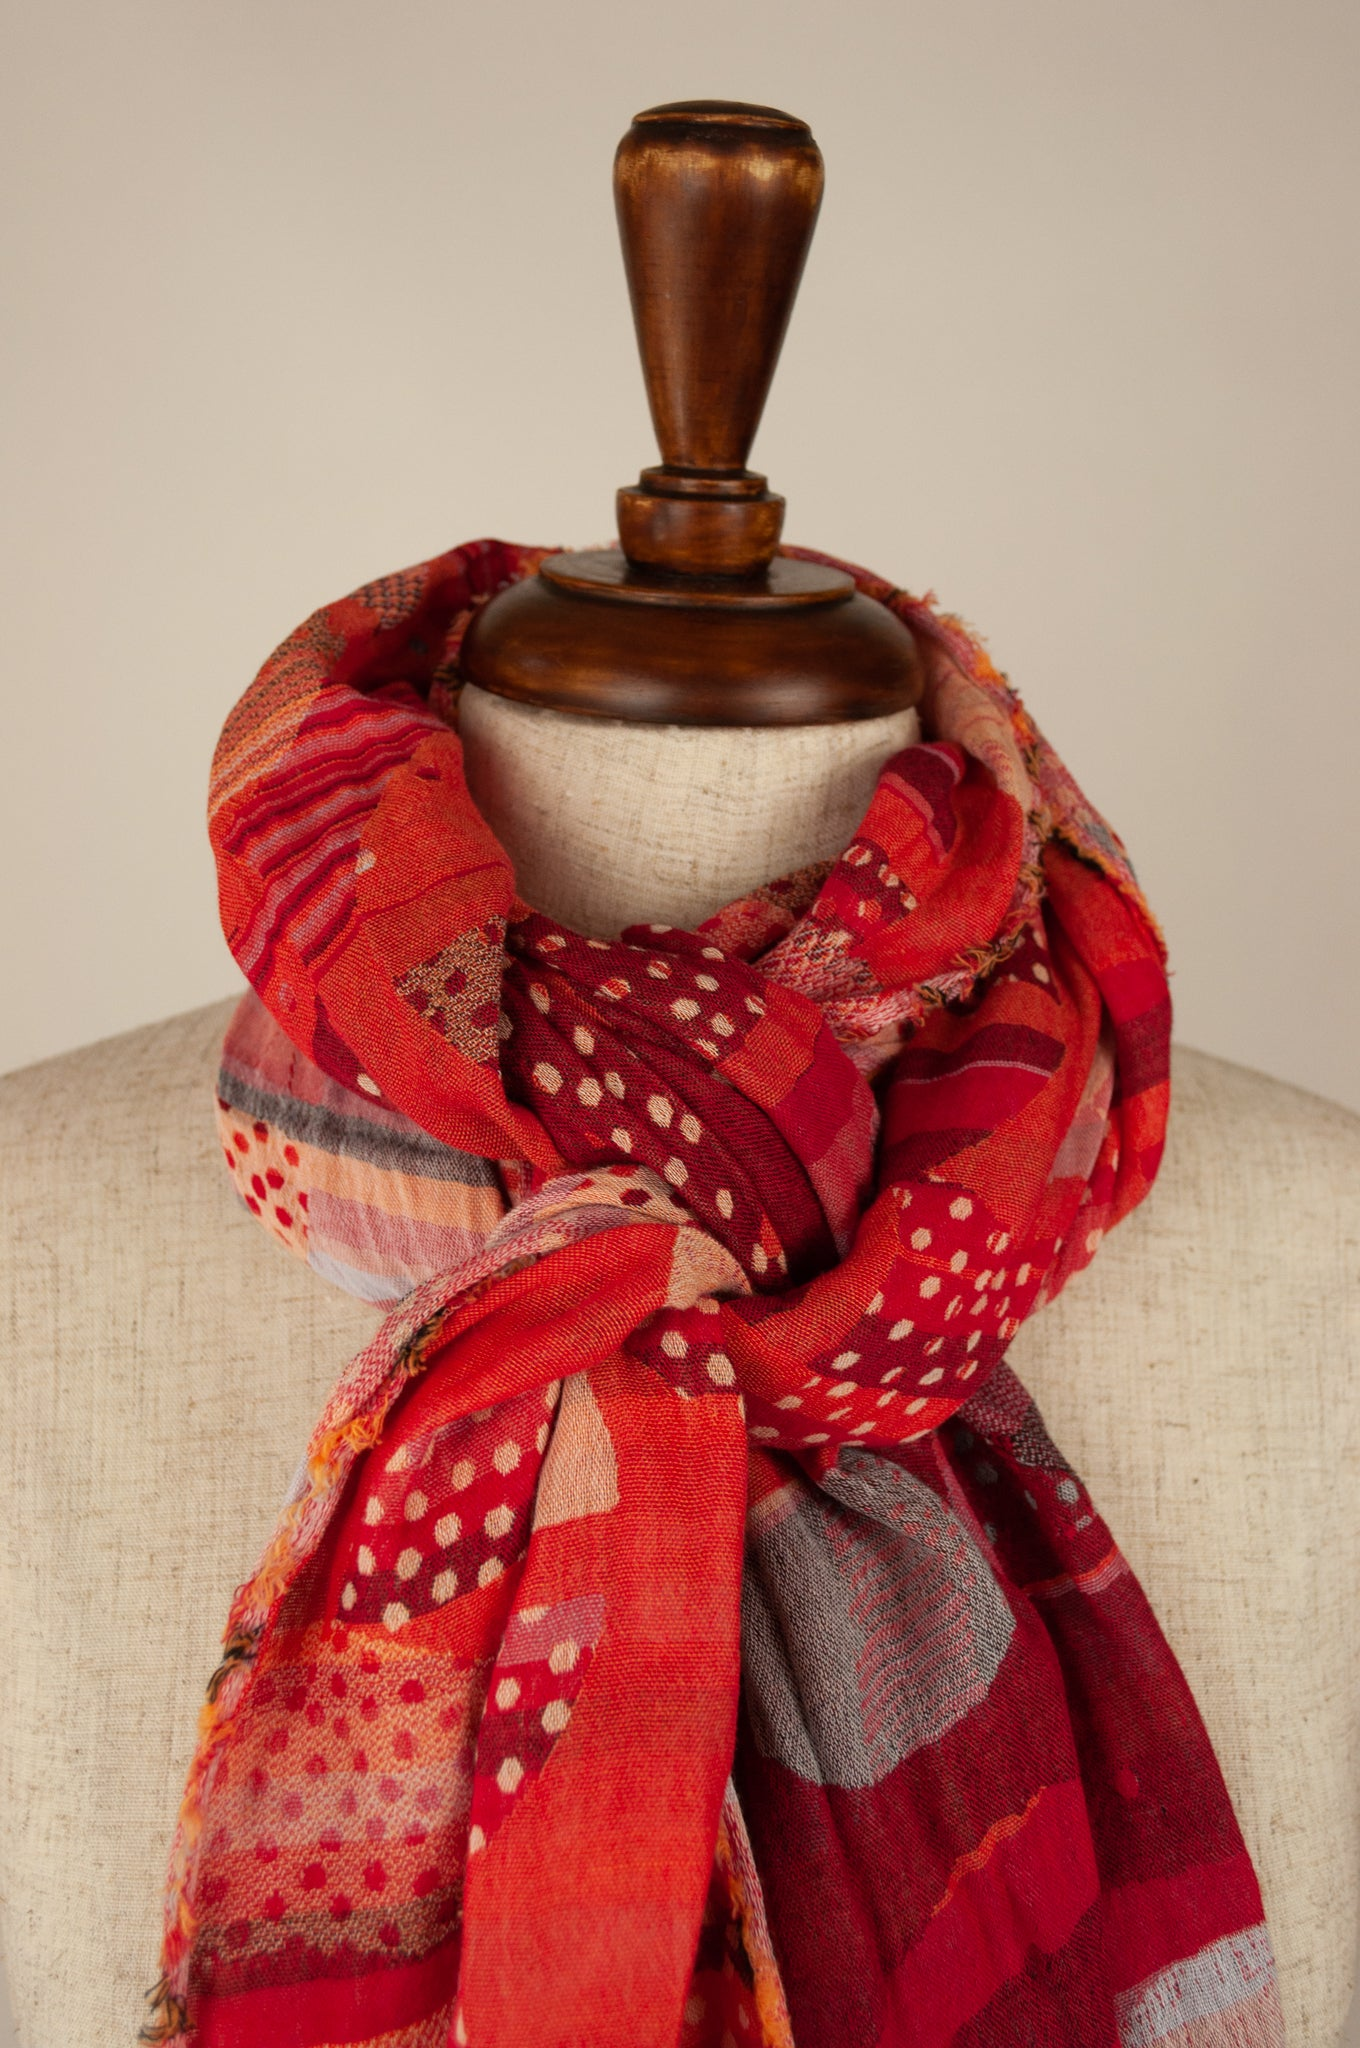 Létol French organic cotton scarf with a geometric print of circles and stripes in tones of coral, orange and red.